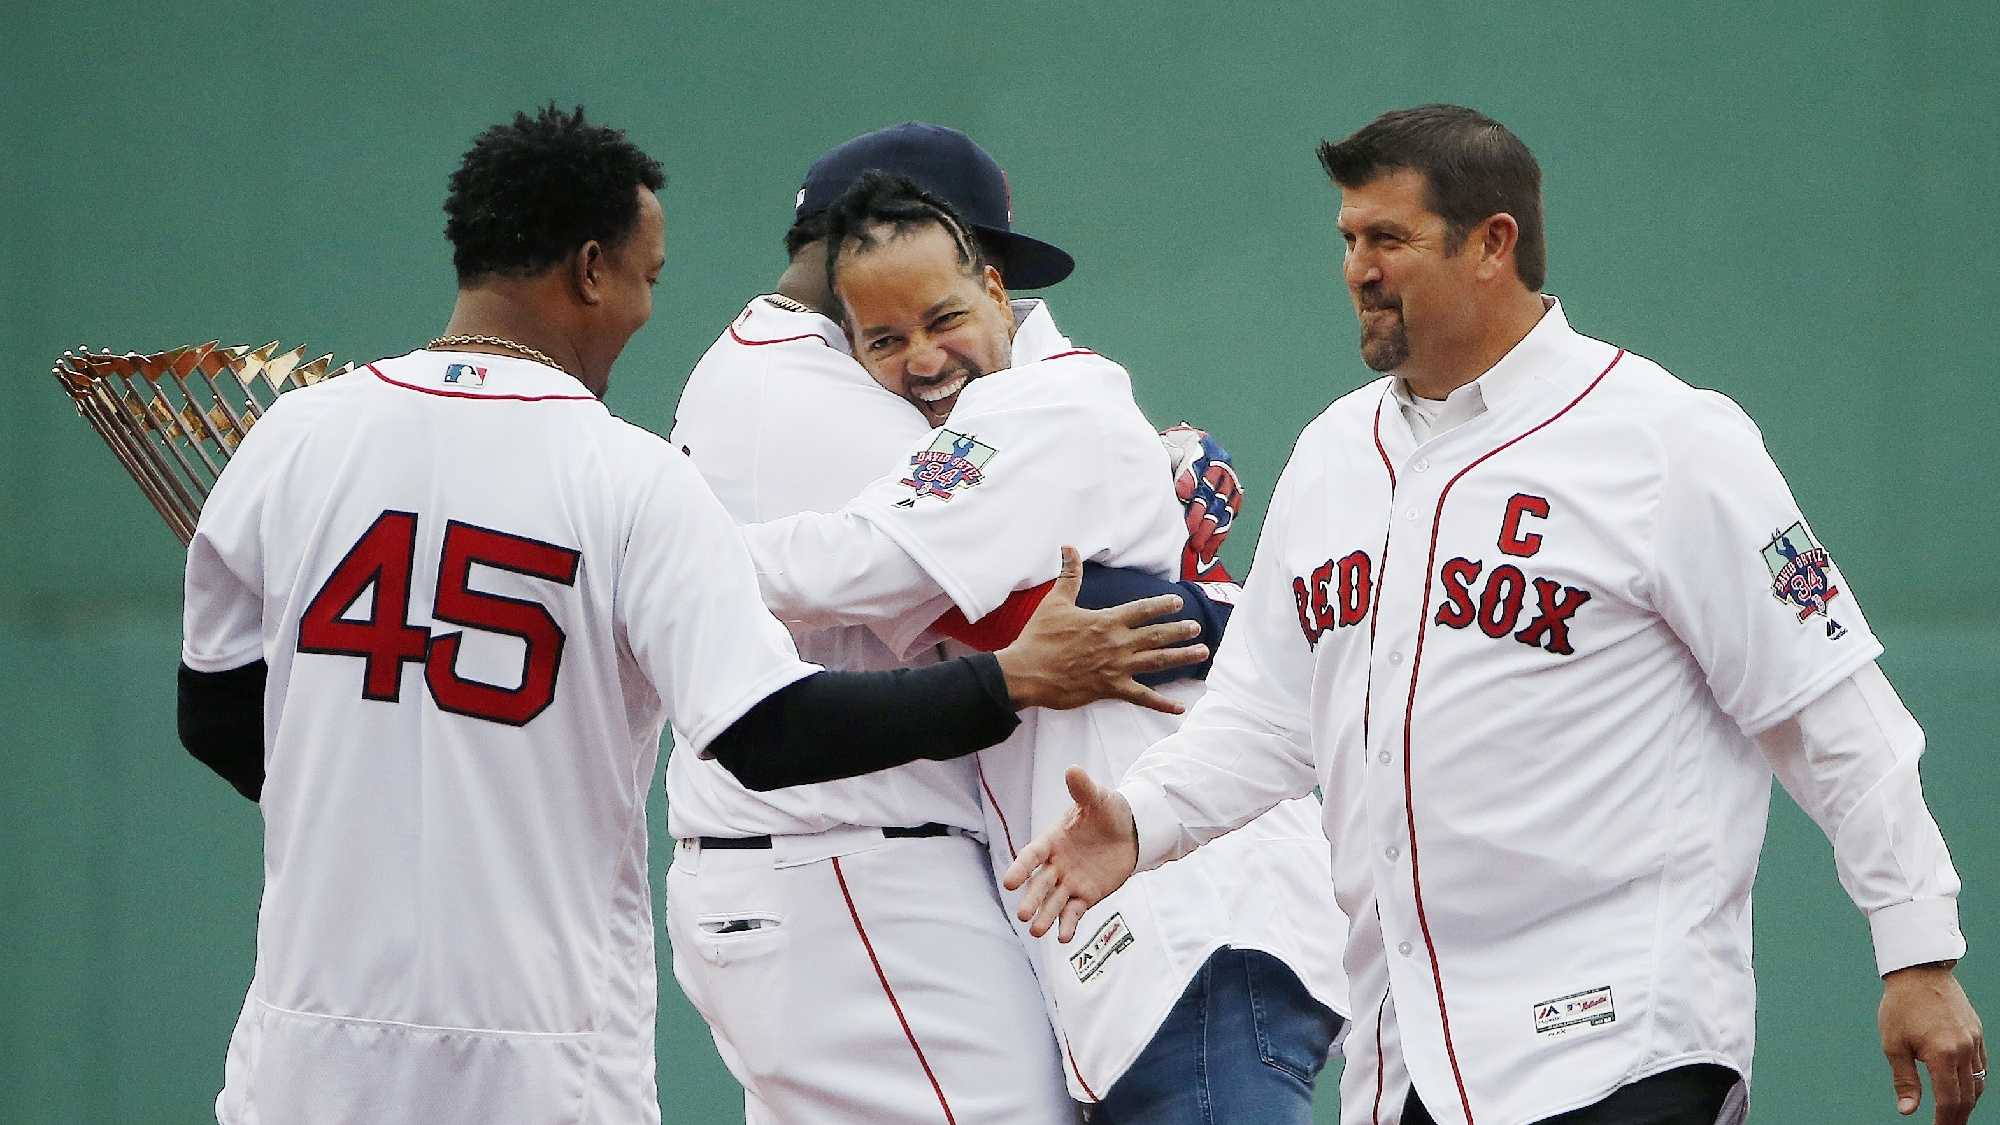 Boston Red Sox's David Ortiz, center left, hugs former teammate Manny Ramirez, center right, behind former teammates Pedro Martinez, left, and Jason Varitek during a ceremony before a baseball game against the Toronto Blue Jays in Boston, Sunday, Oct. 2, 2016.